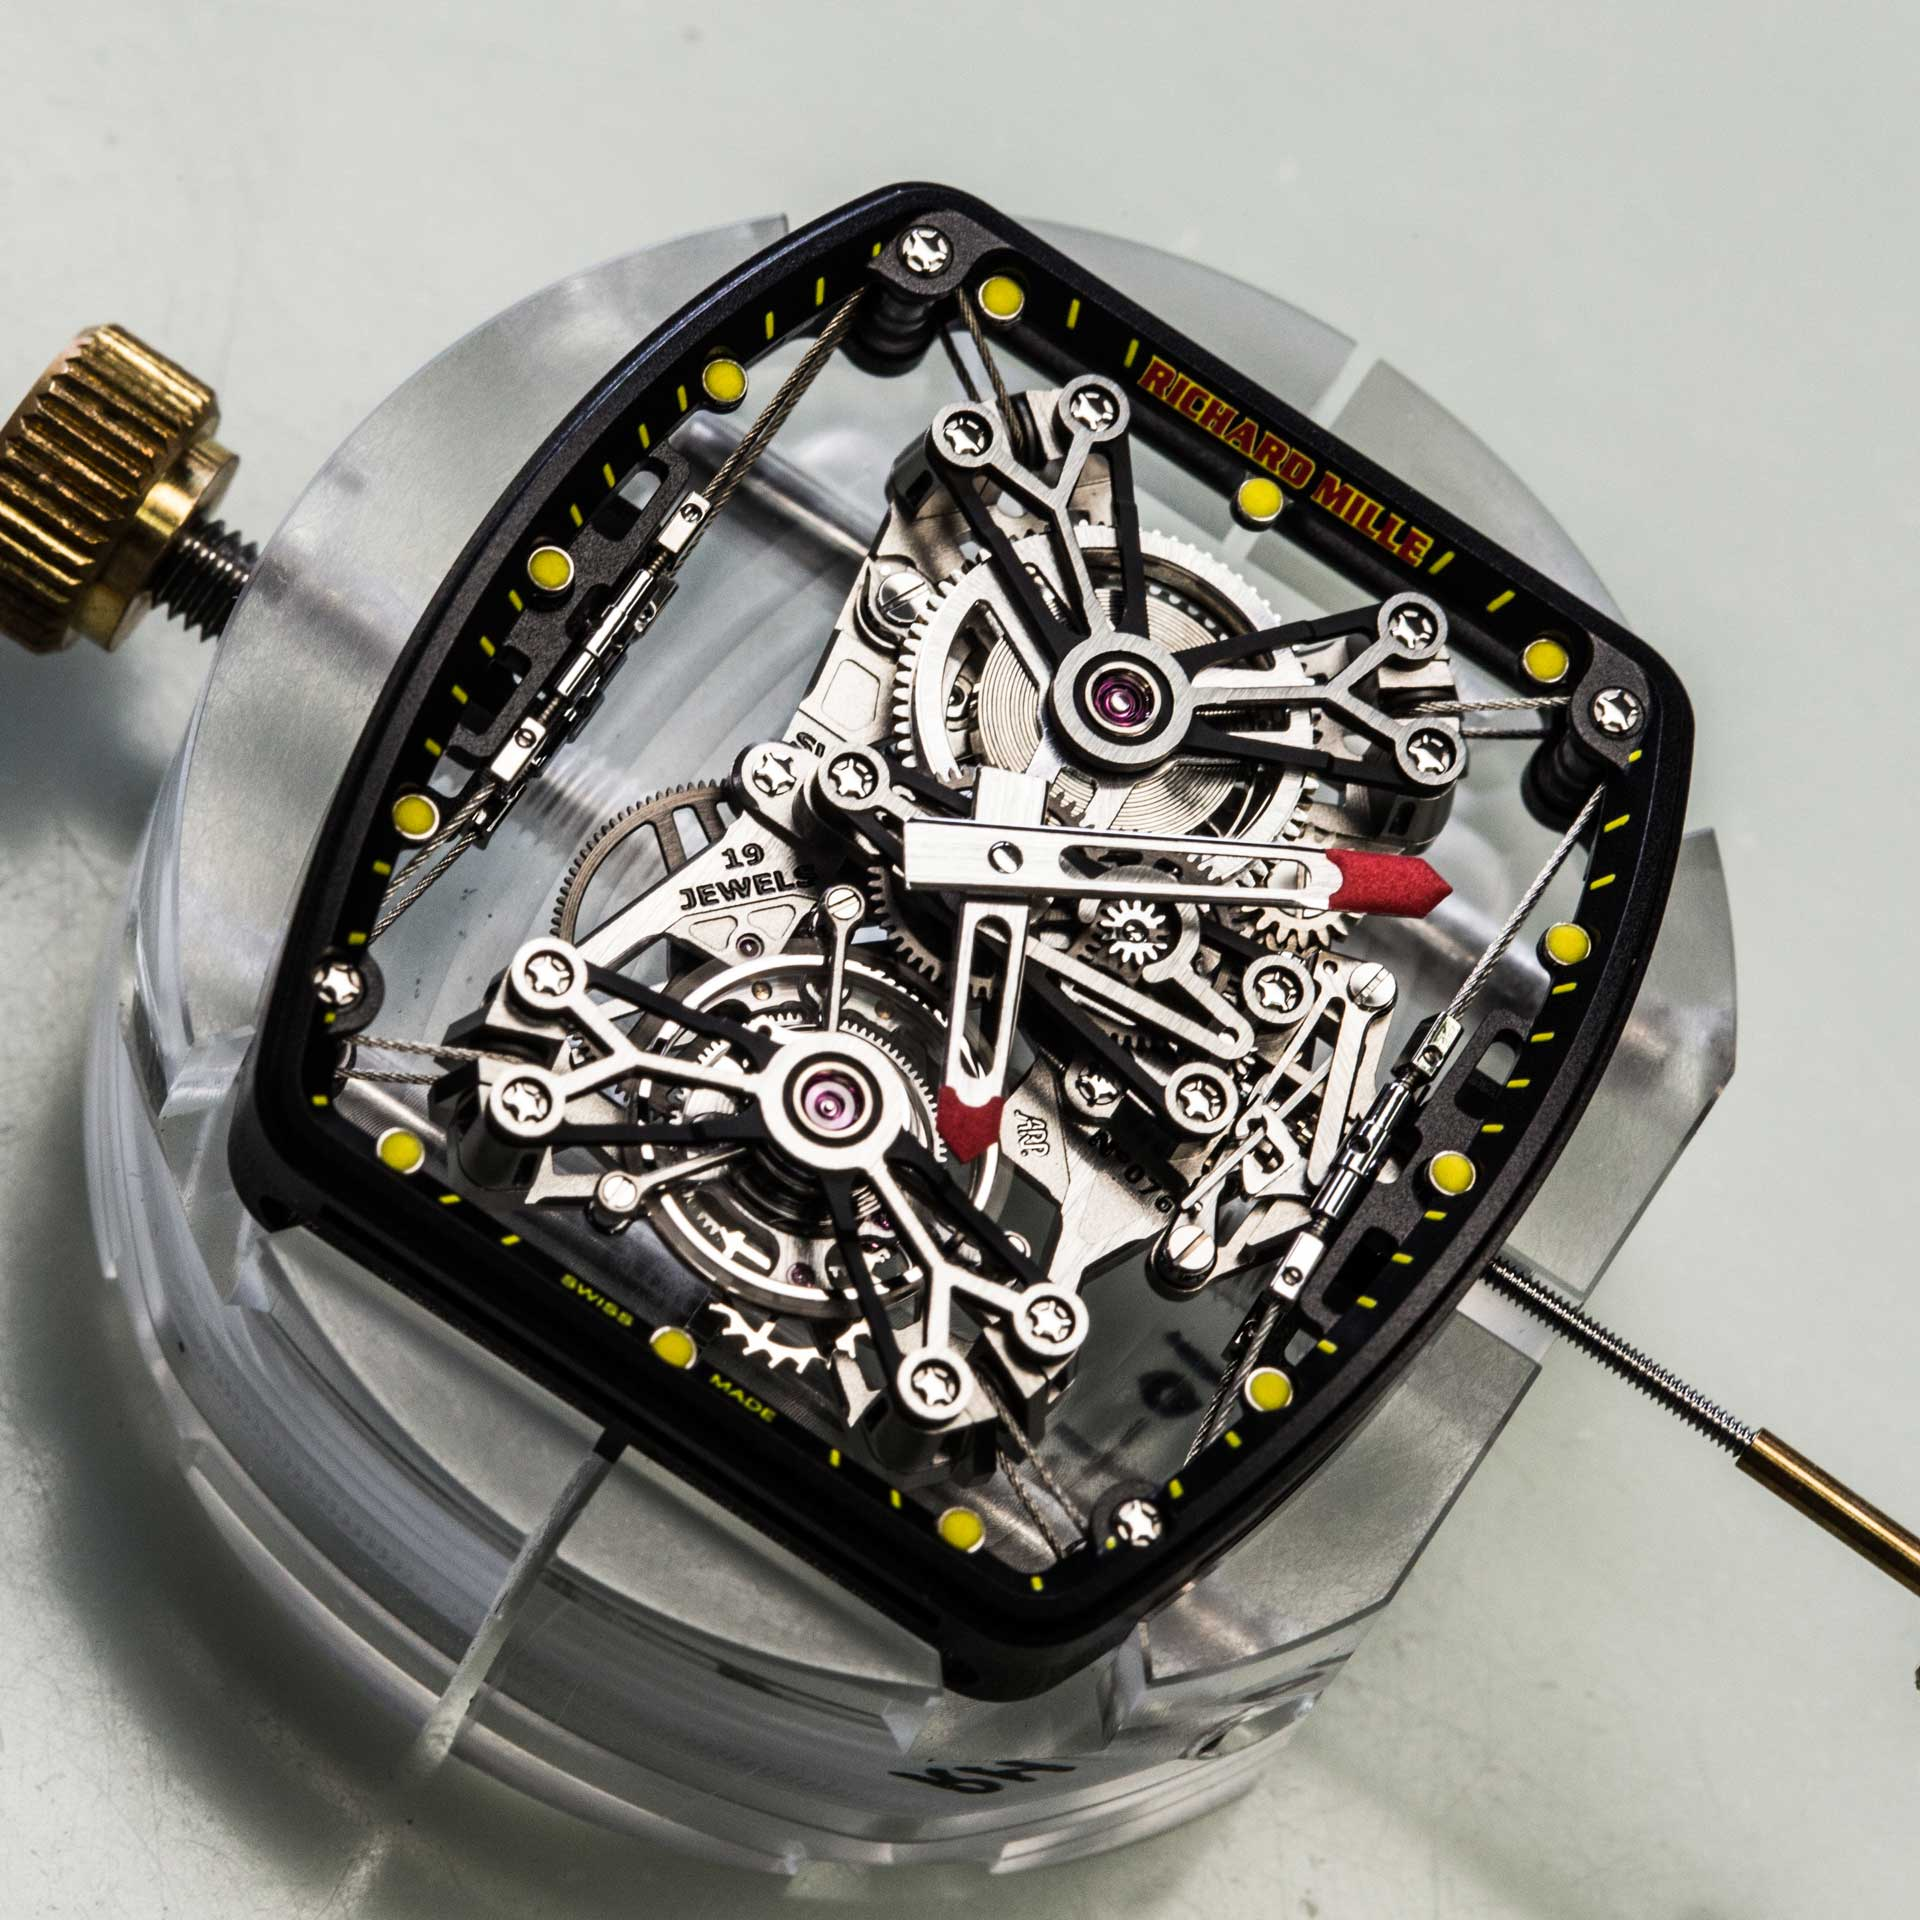 Richard Mille RM27-01 movement with its cable suspension system for A Collected Man London